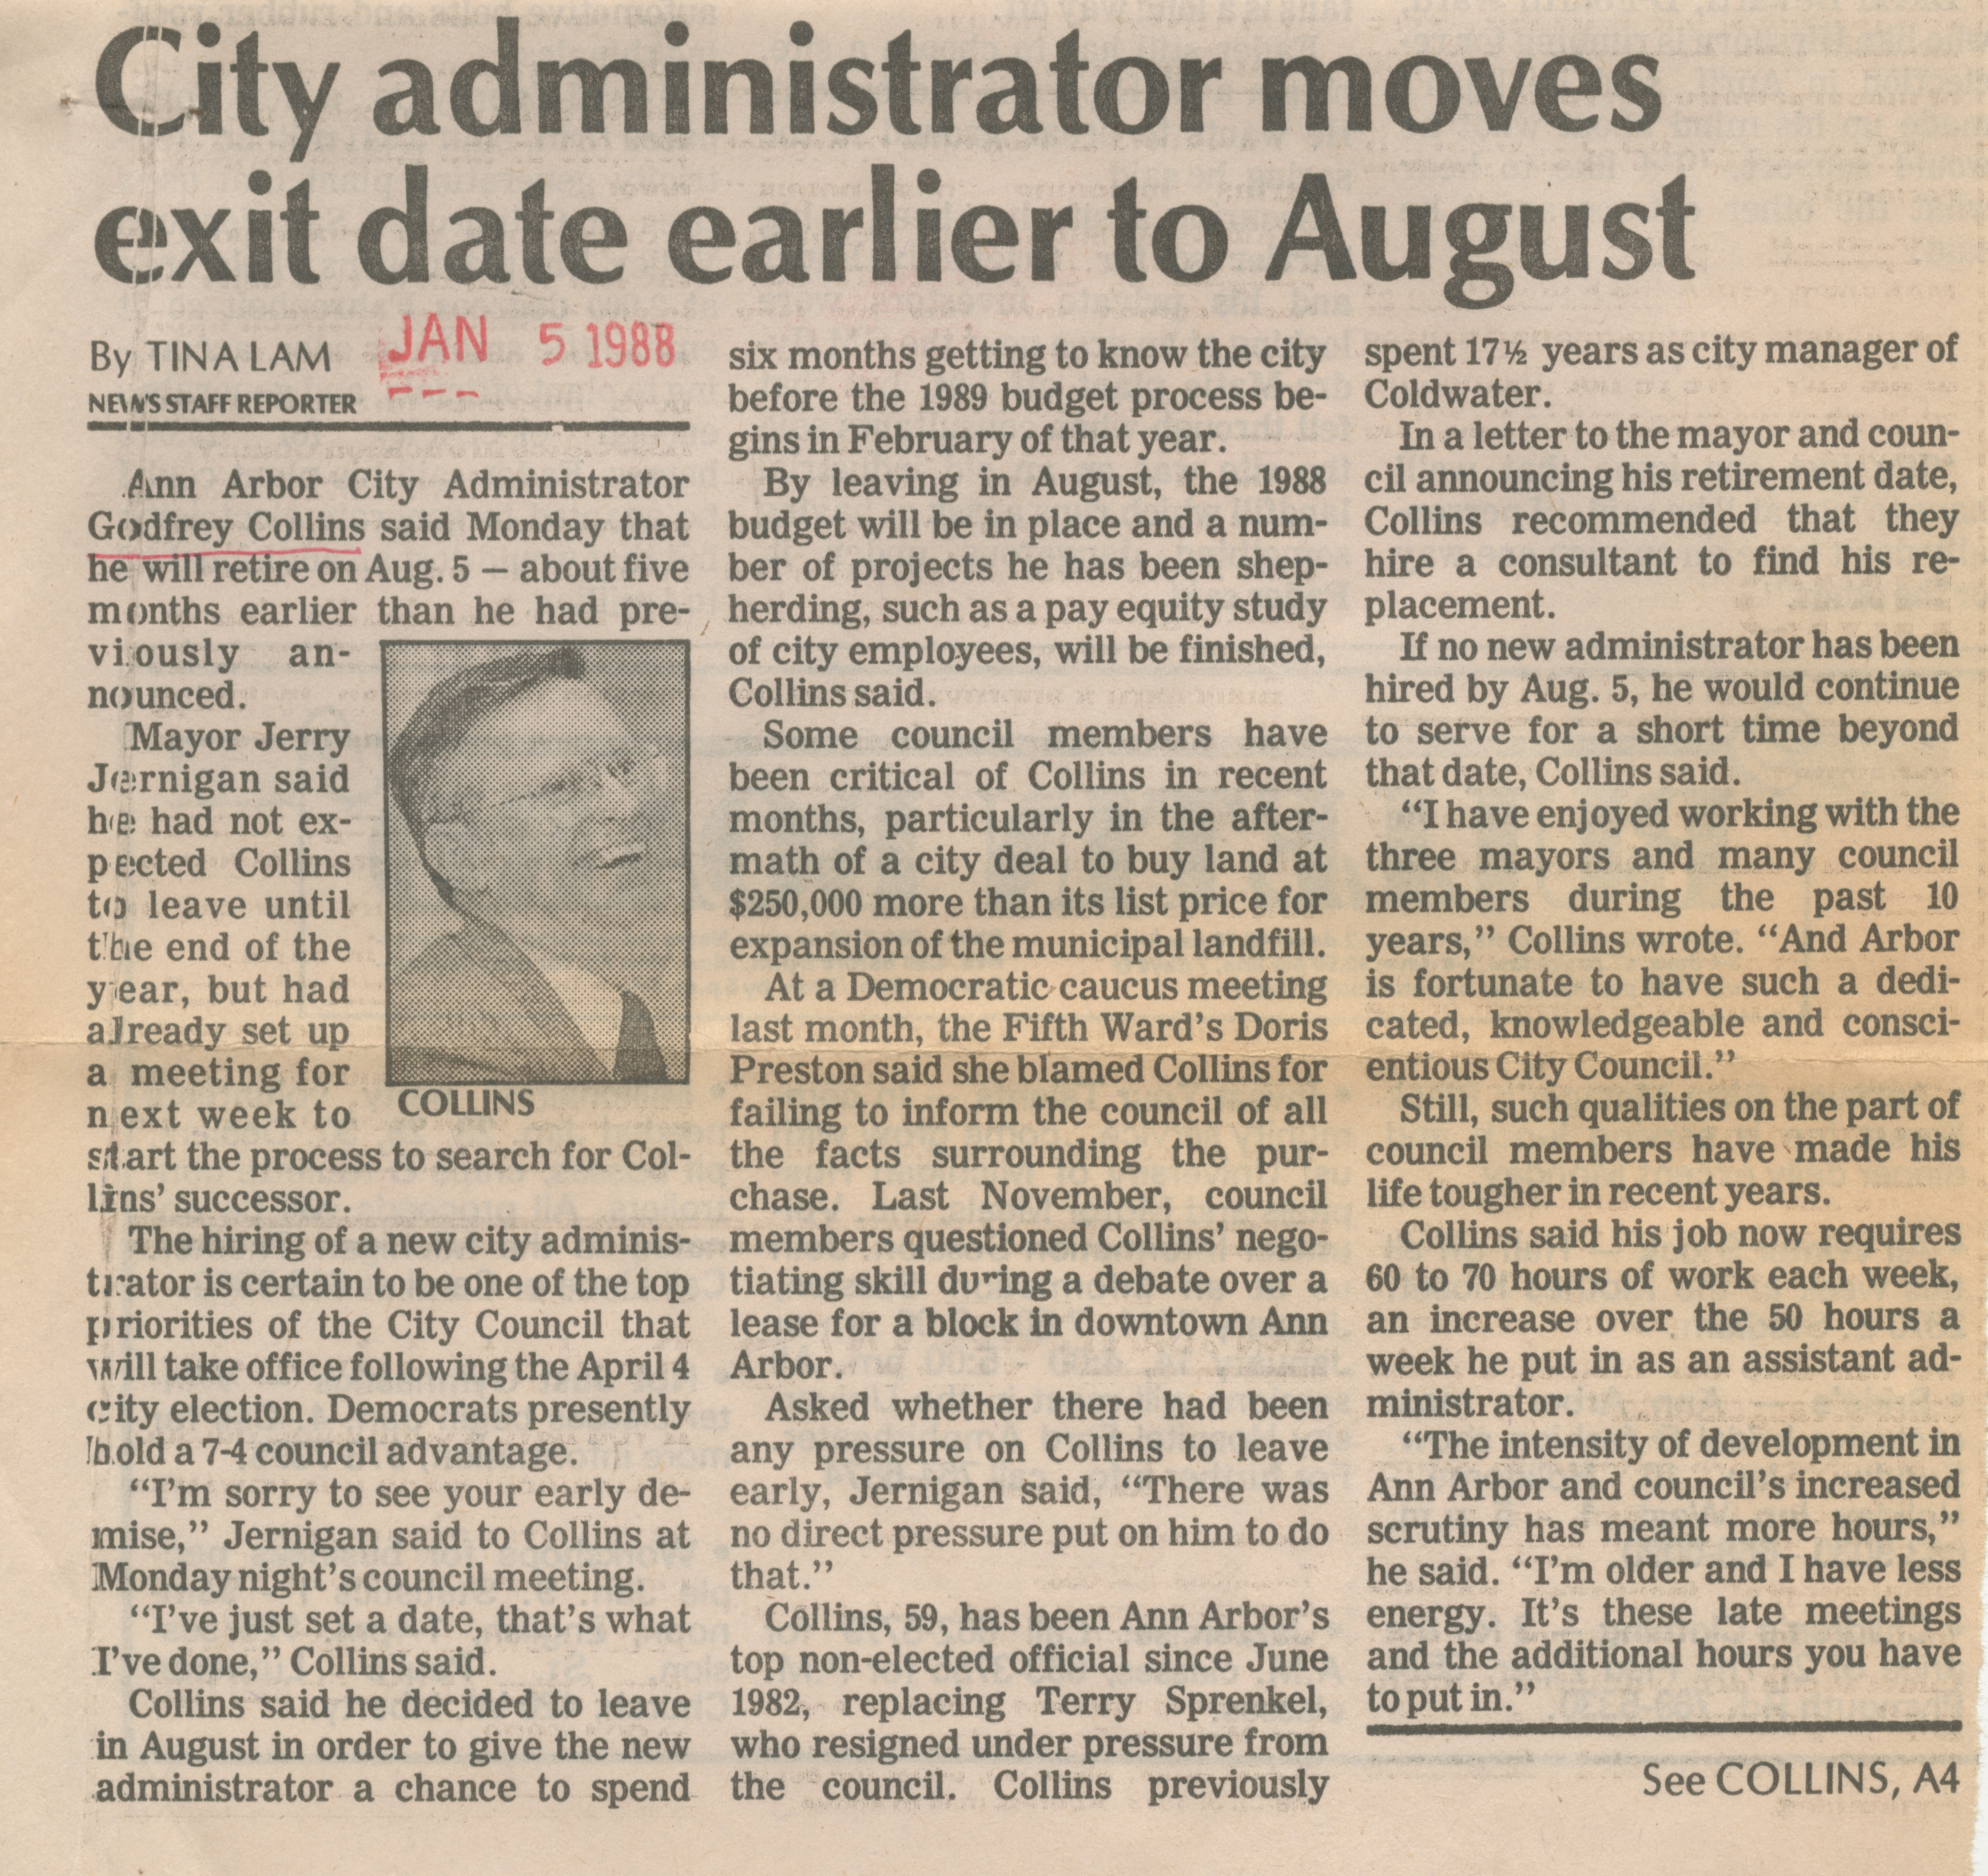 City administrator moves exit date earlier to August image